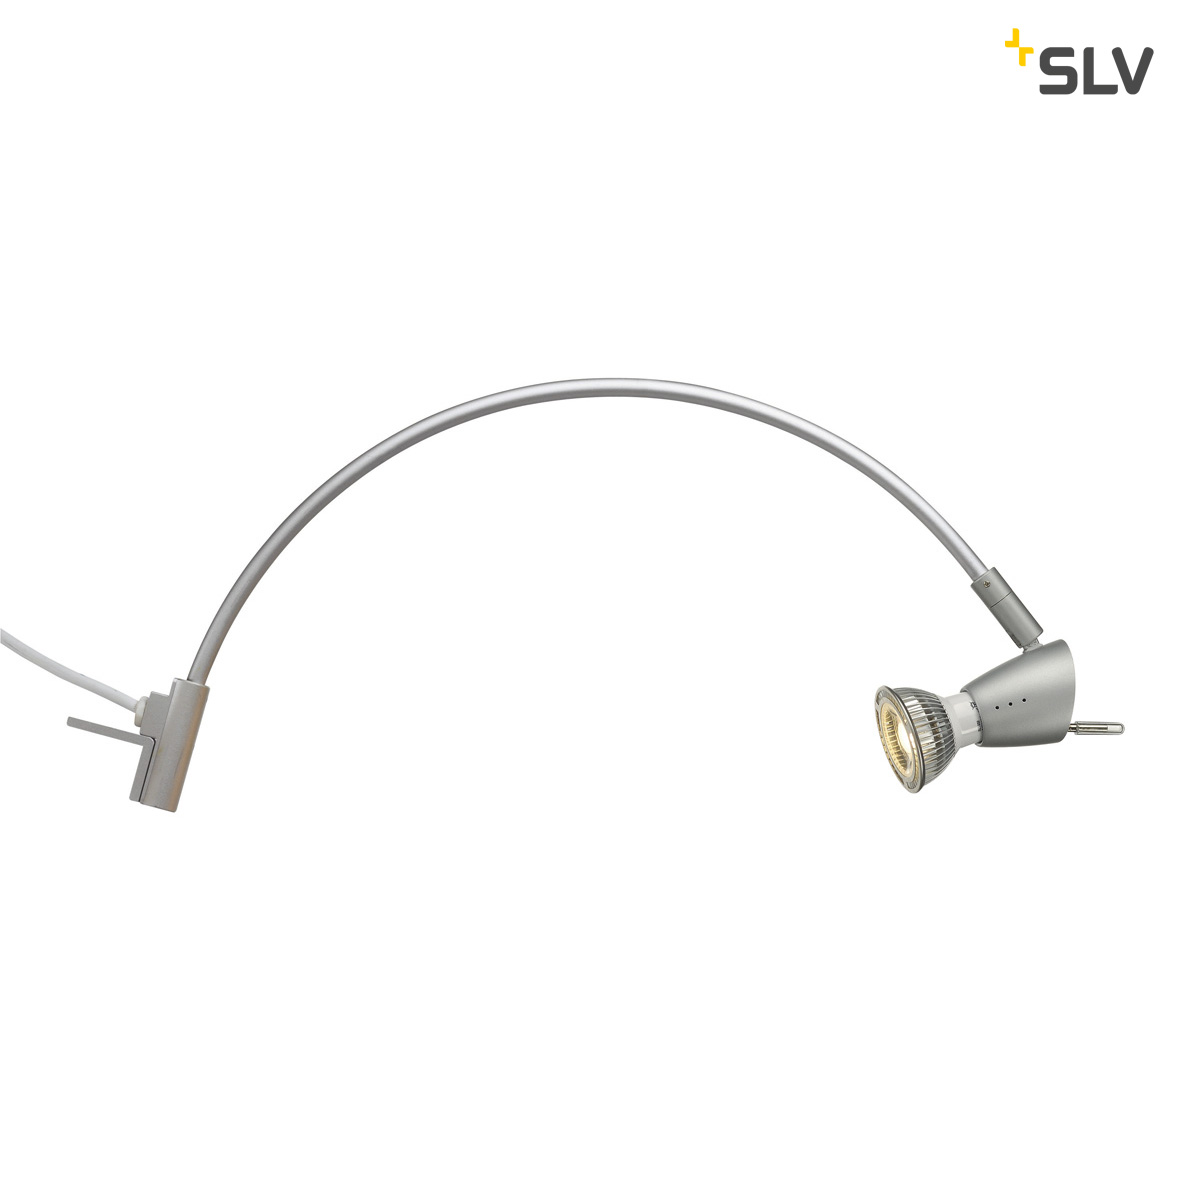 SLV | LED Kastverlichting set | 2 Lampjes | 2 x 5 Watt | LED | HIBIT zilvergrijs